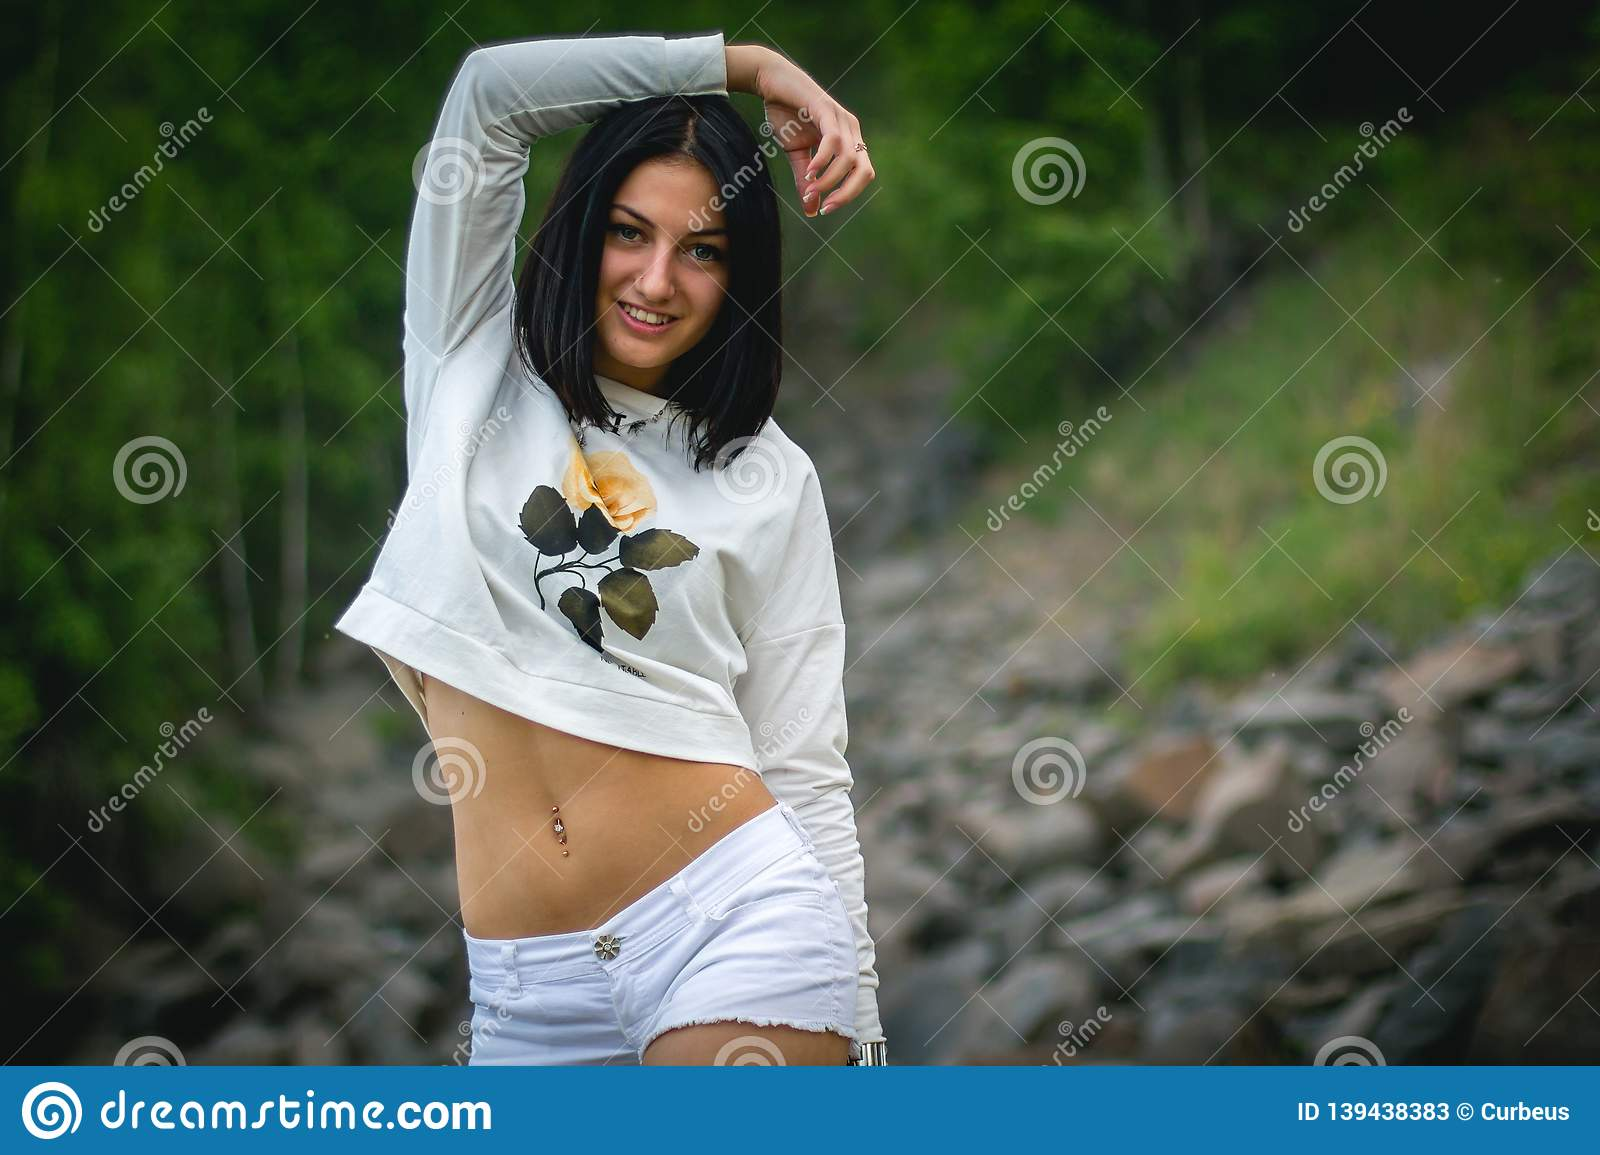 A sporty girl with an open tummy stopped to smile, her hand raised behind her head. Green forest or Park in the background. Female